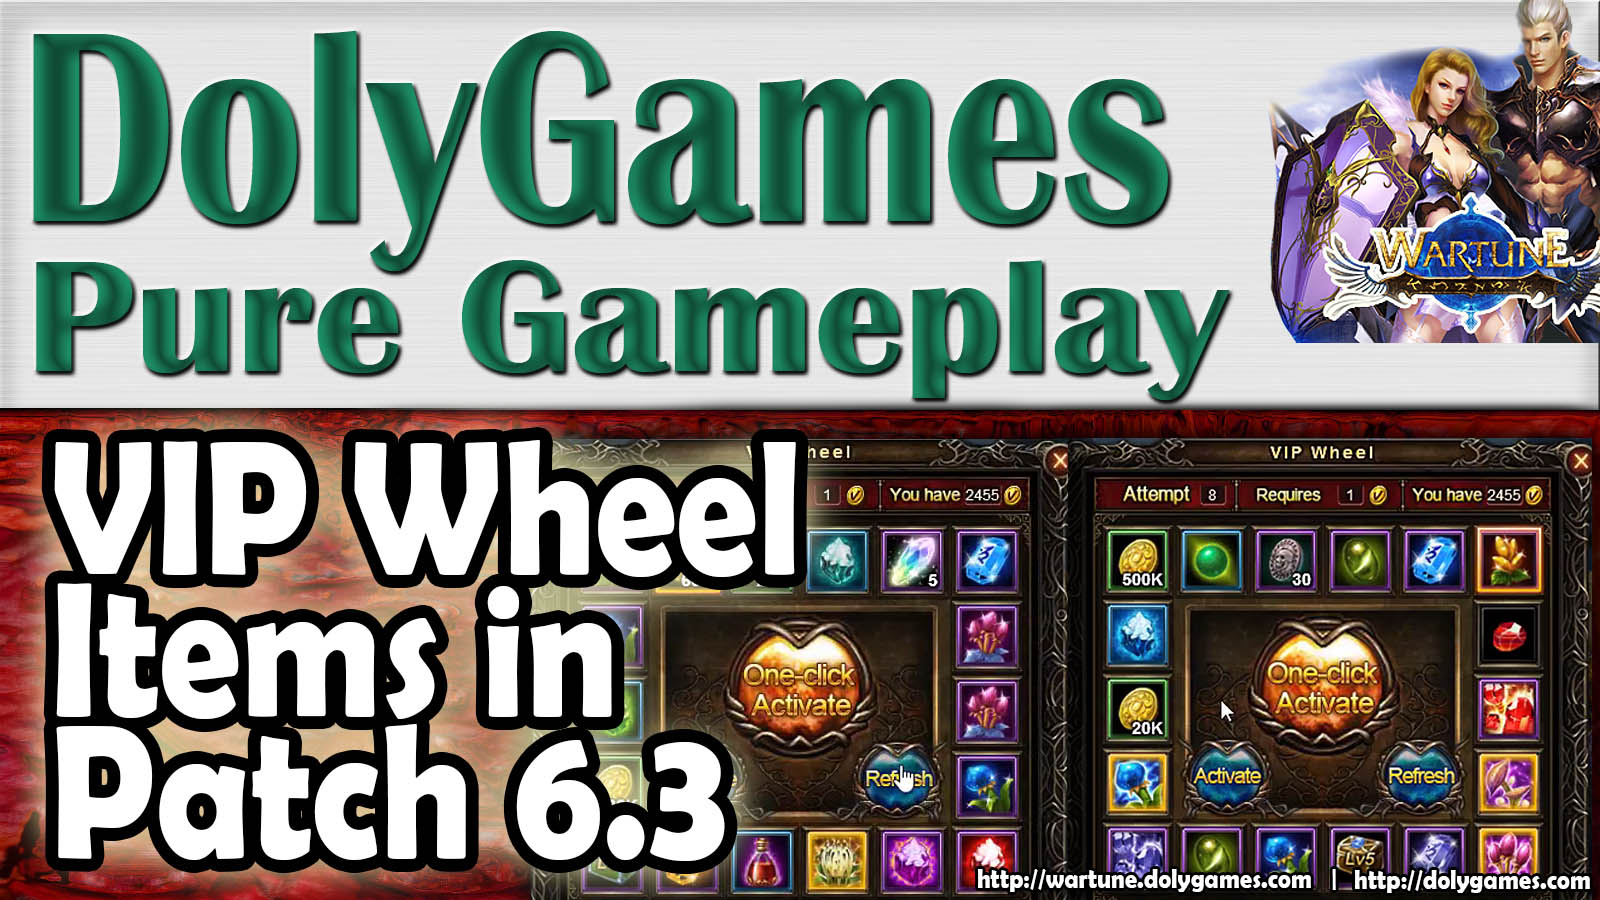 Wartune VIP Wheel Items Patch 6.3